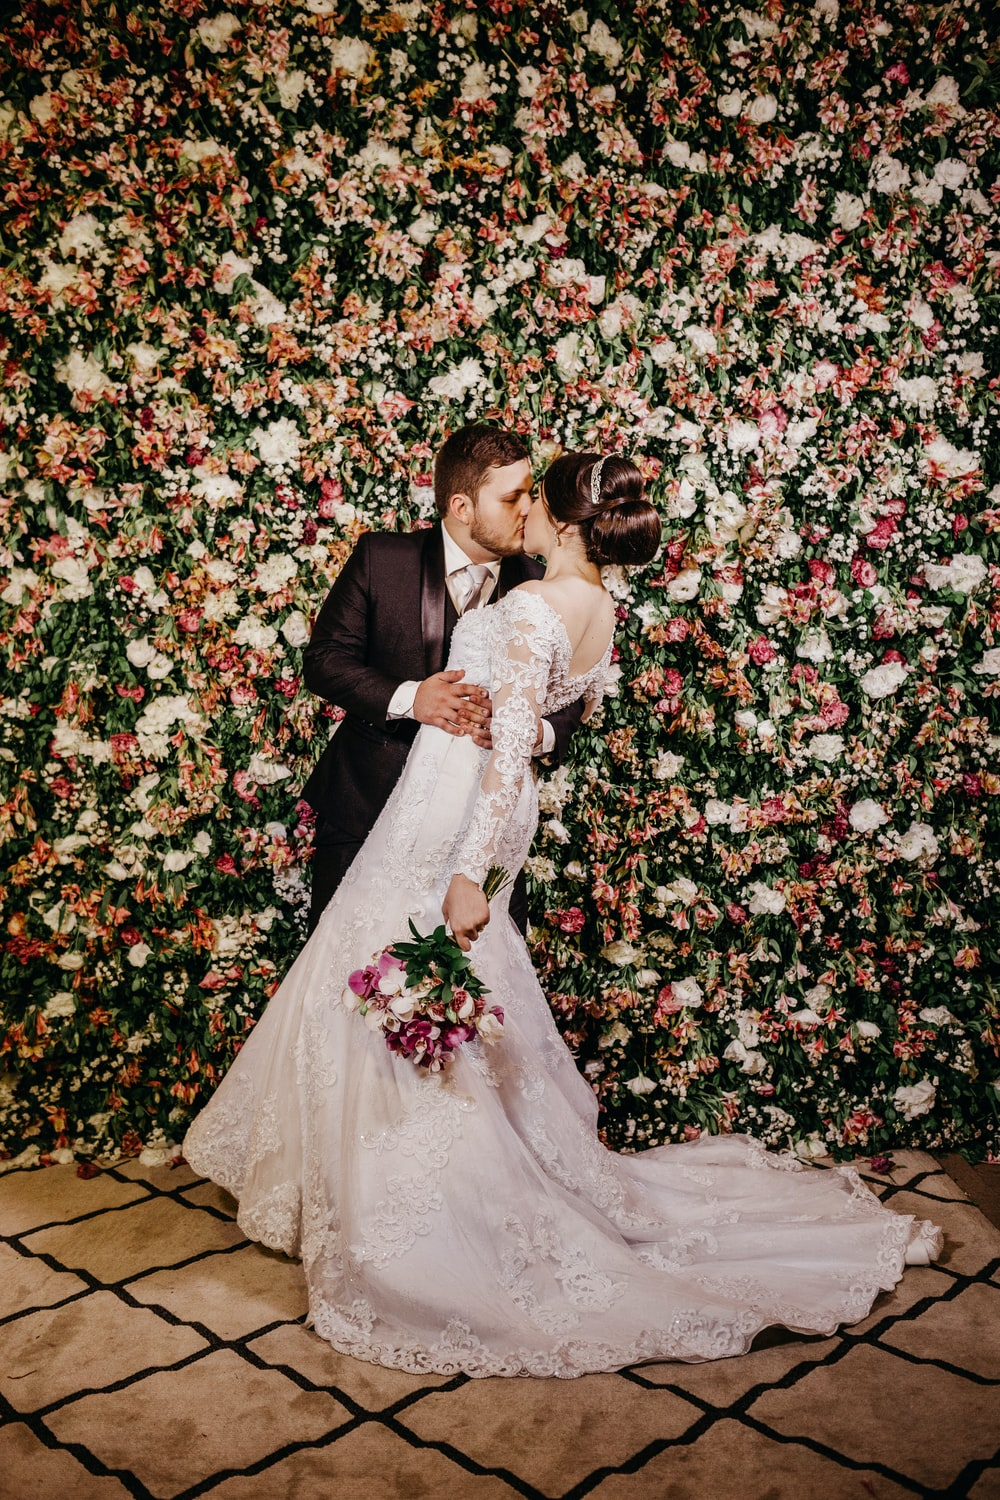 wedding couple kissing with red and white flowers background